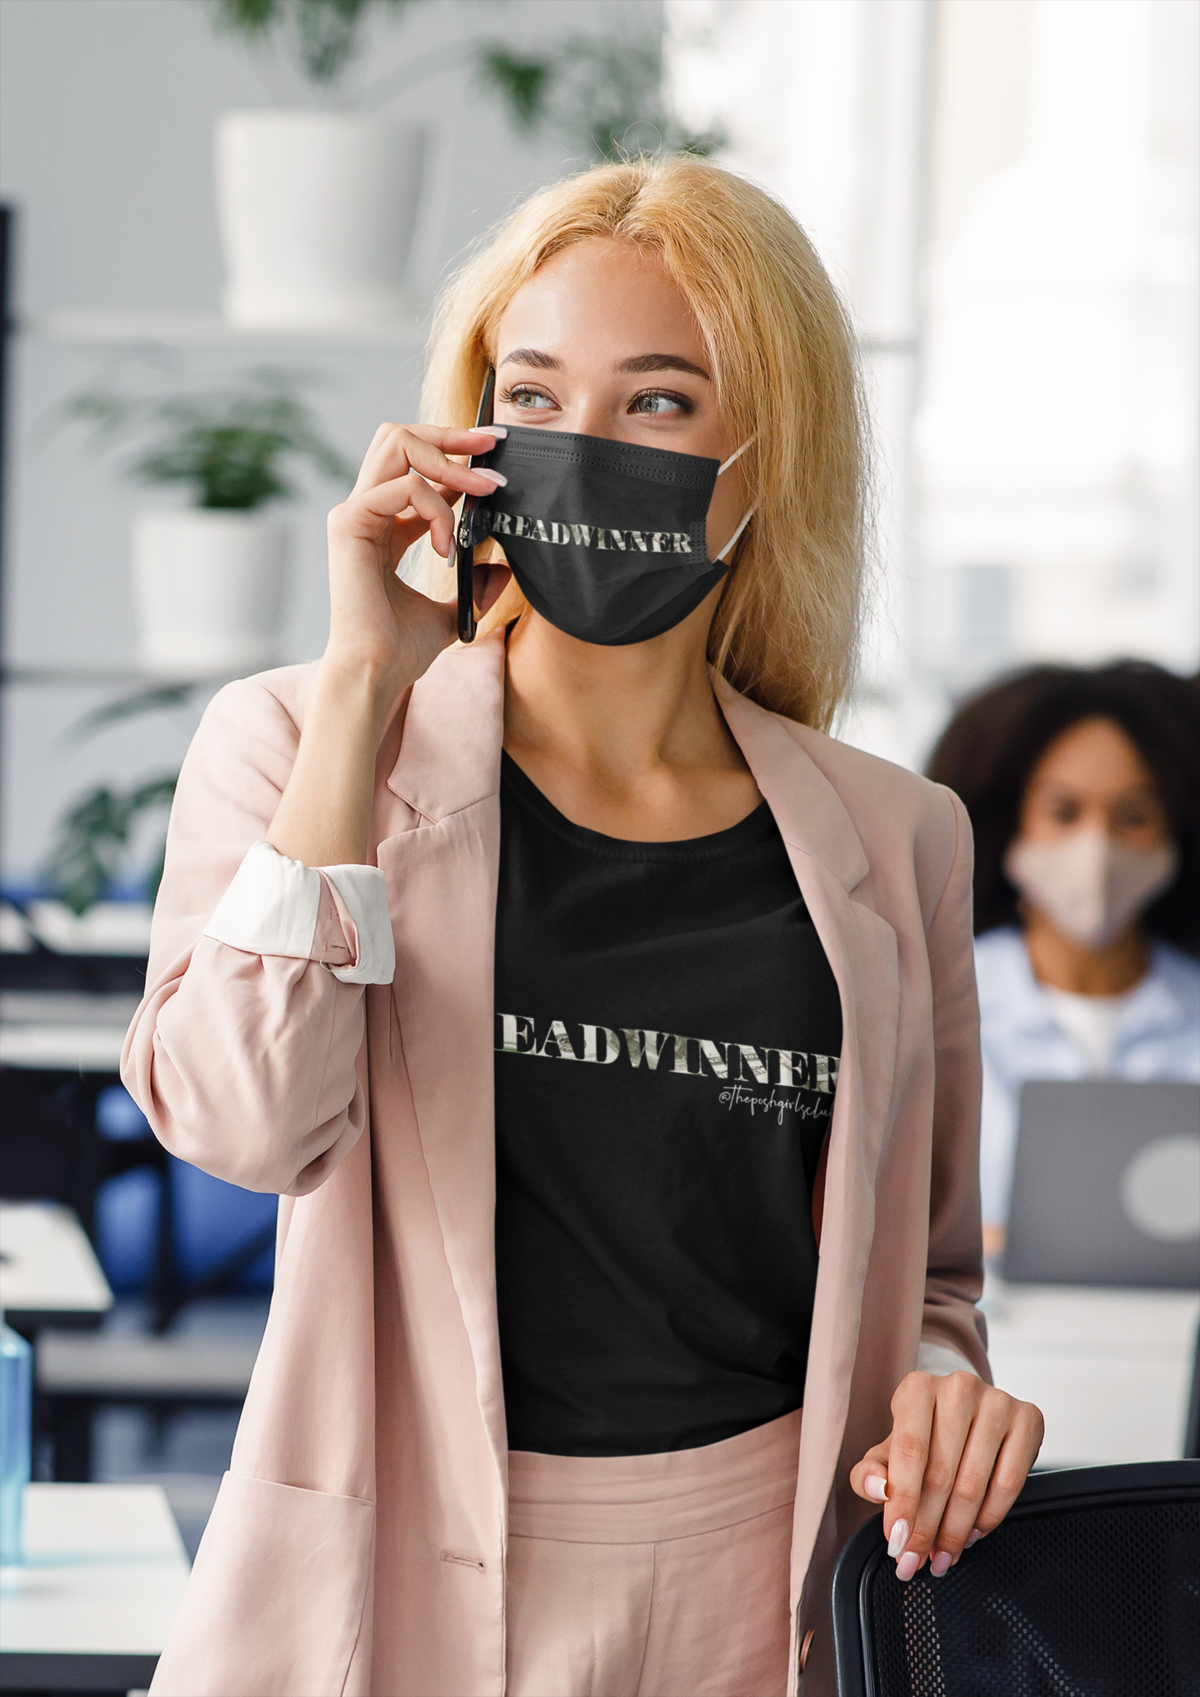 t-shirt-and-face-mask-mockup-featuring-a-woman-on-the-phone-at-work-44068-r-el2